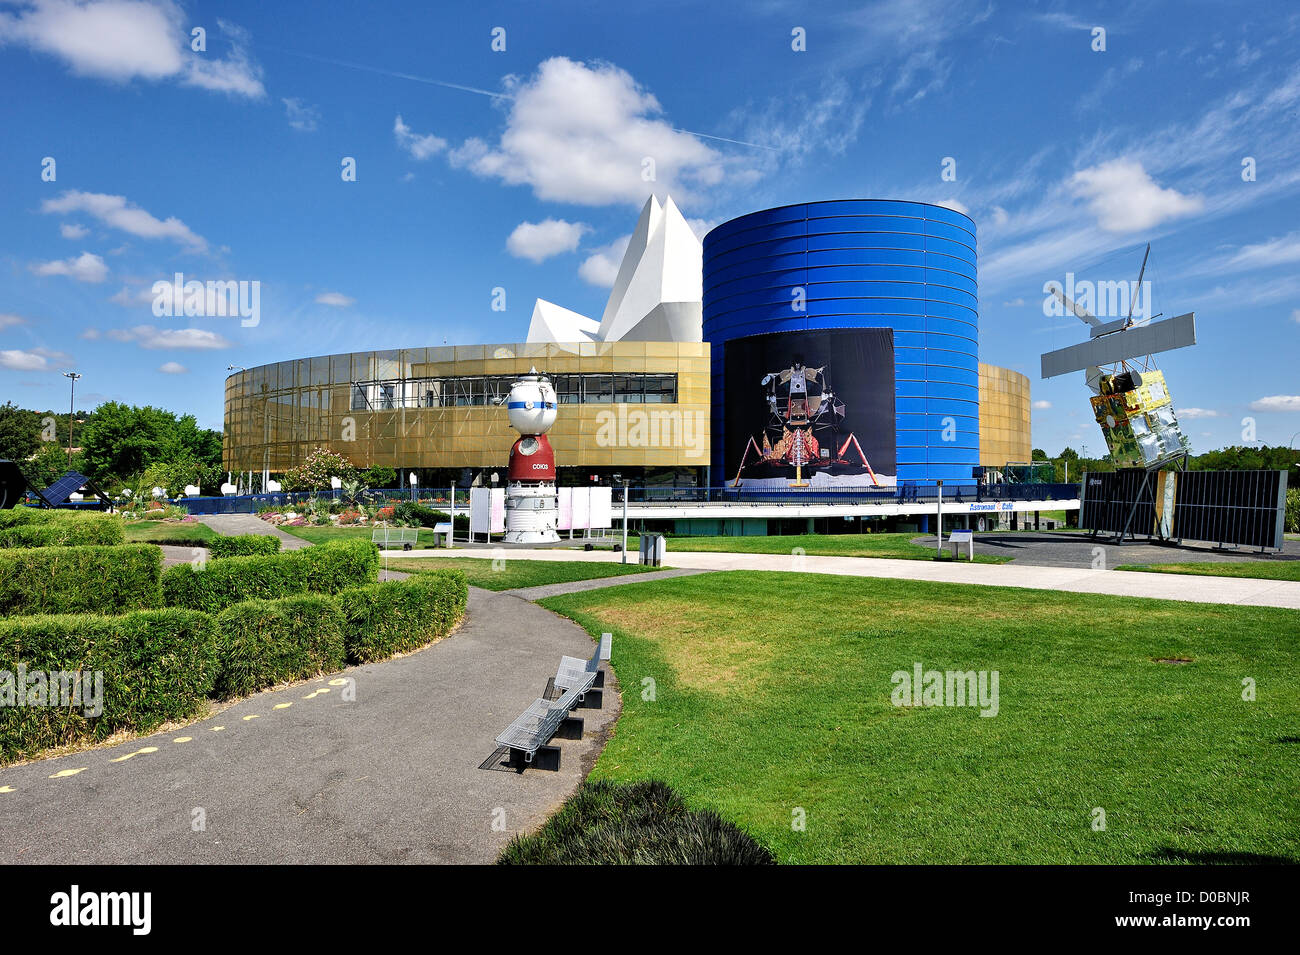 The Cite de l'Espace, Toulouse, France. - Stock Image